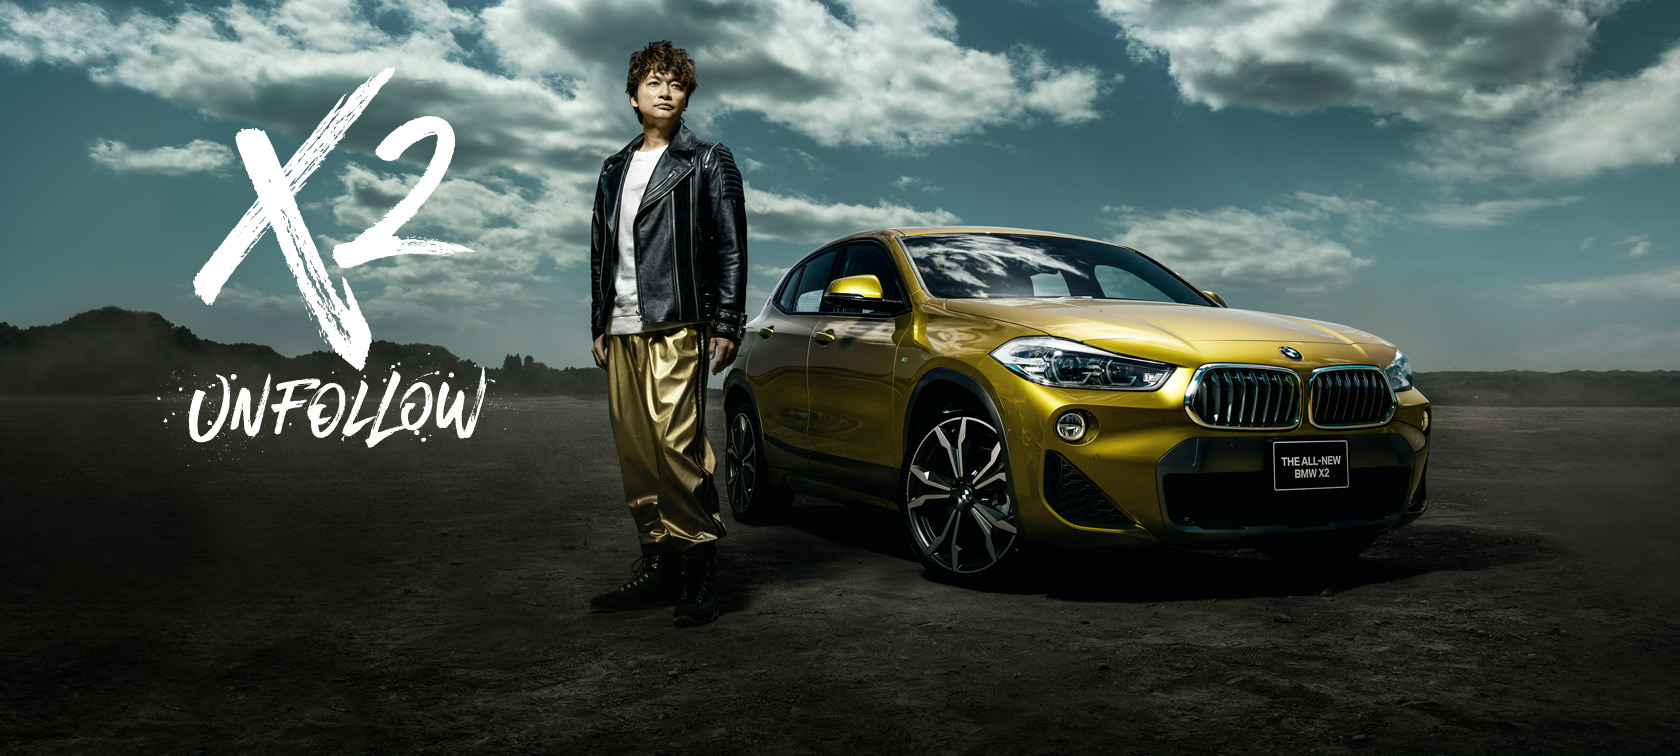 THE ALL-NEW BMW X2 meets Shingo Katori